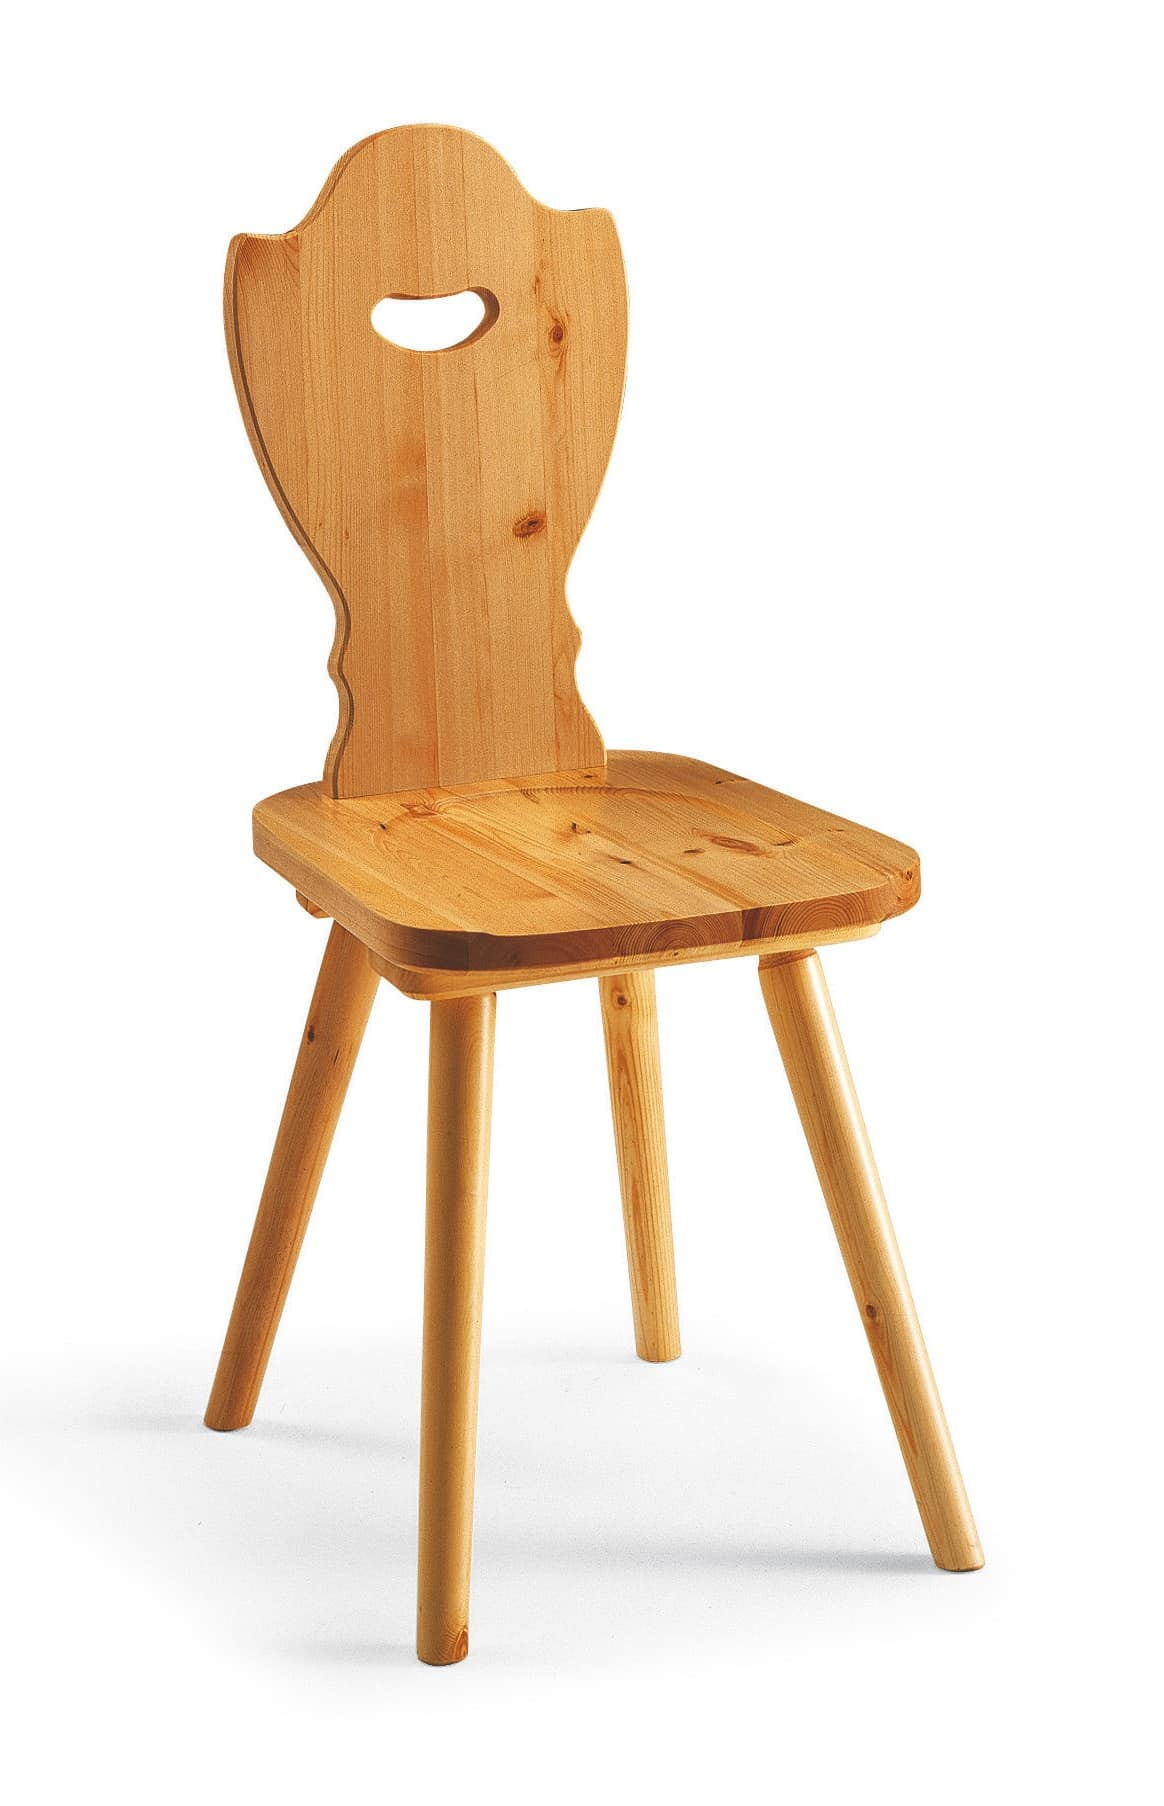 S/102 Bayern Chair, Rustic chair in solid pine, for mountain chalet